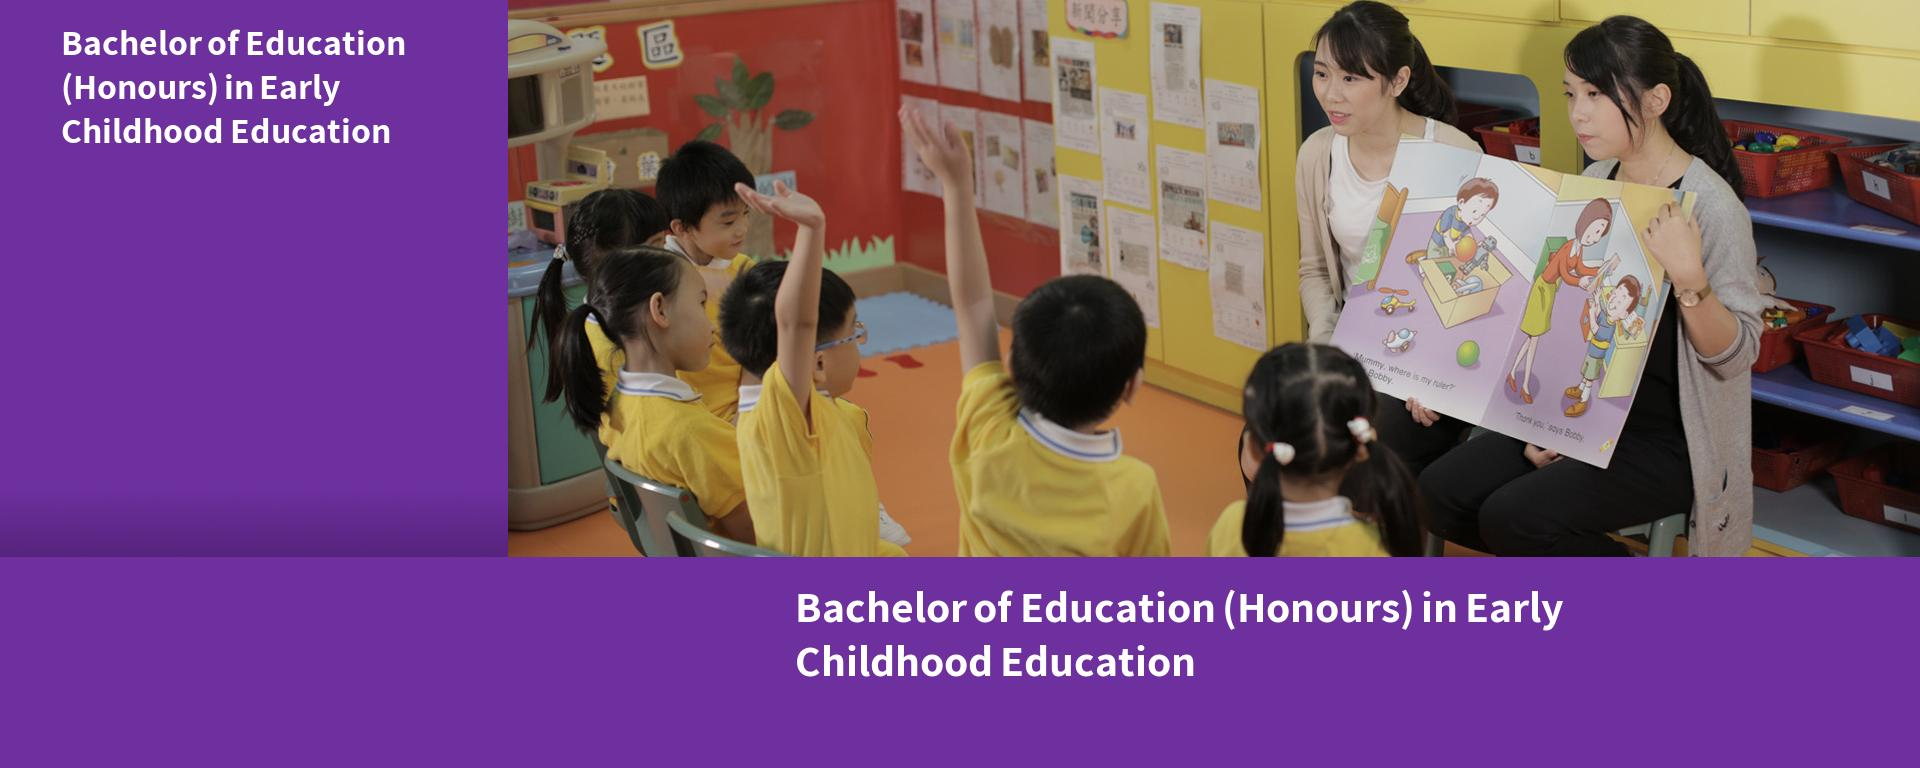 Bachelor of Education (Honours) in Early Childhood Education